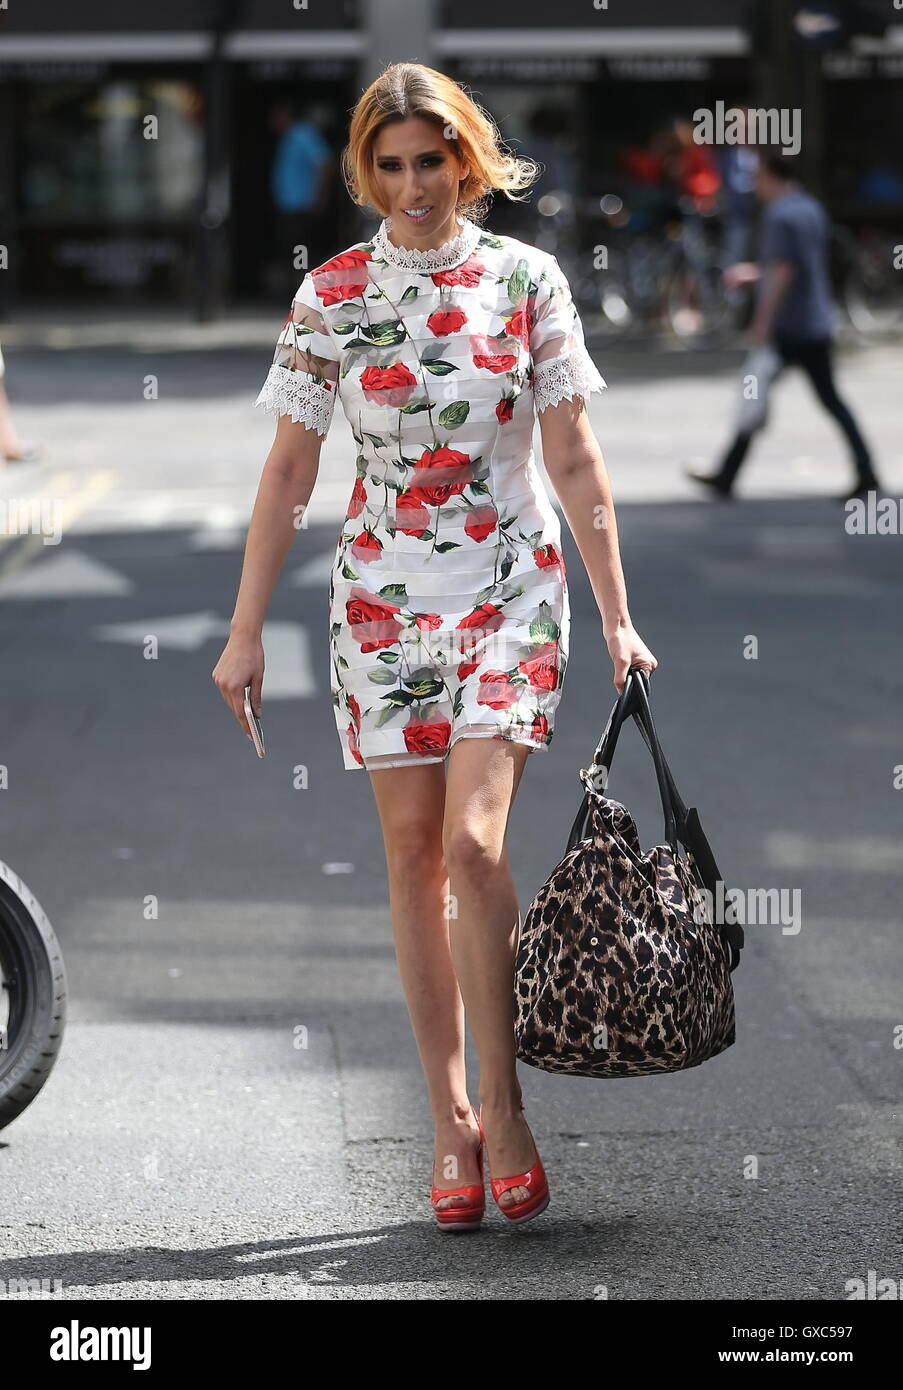 Stacey Solomon wearing a rose patterned minidress and red high heels while out and about in London  Featuring: Stacey - Stock Image